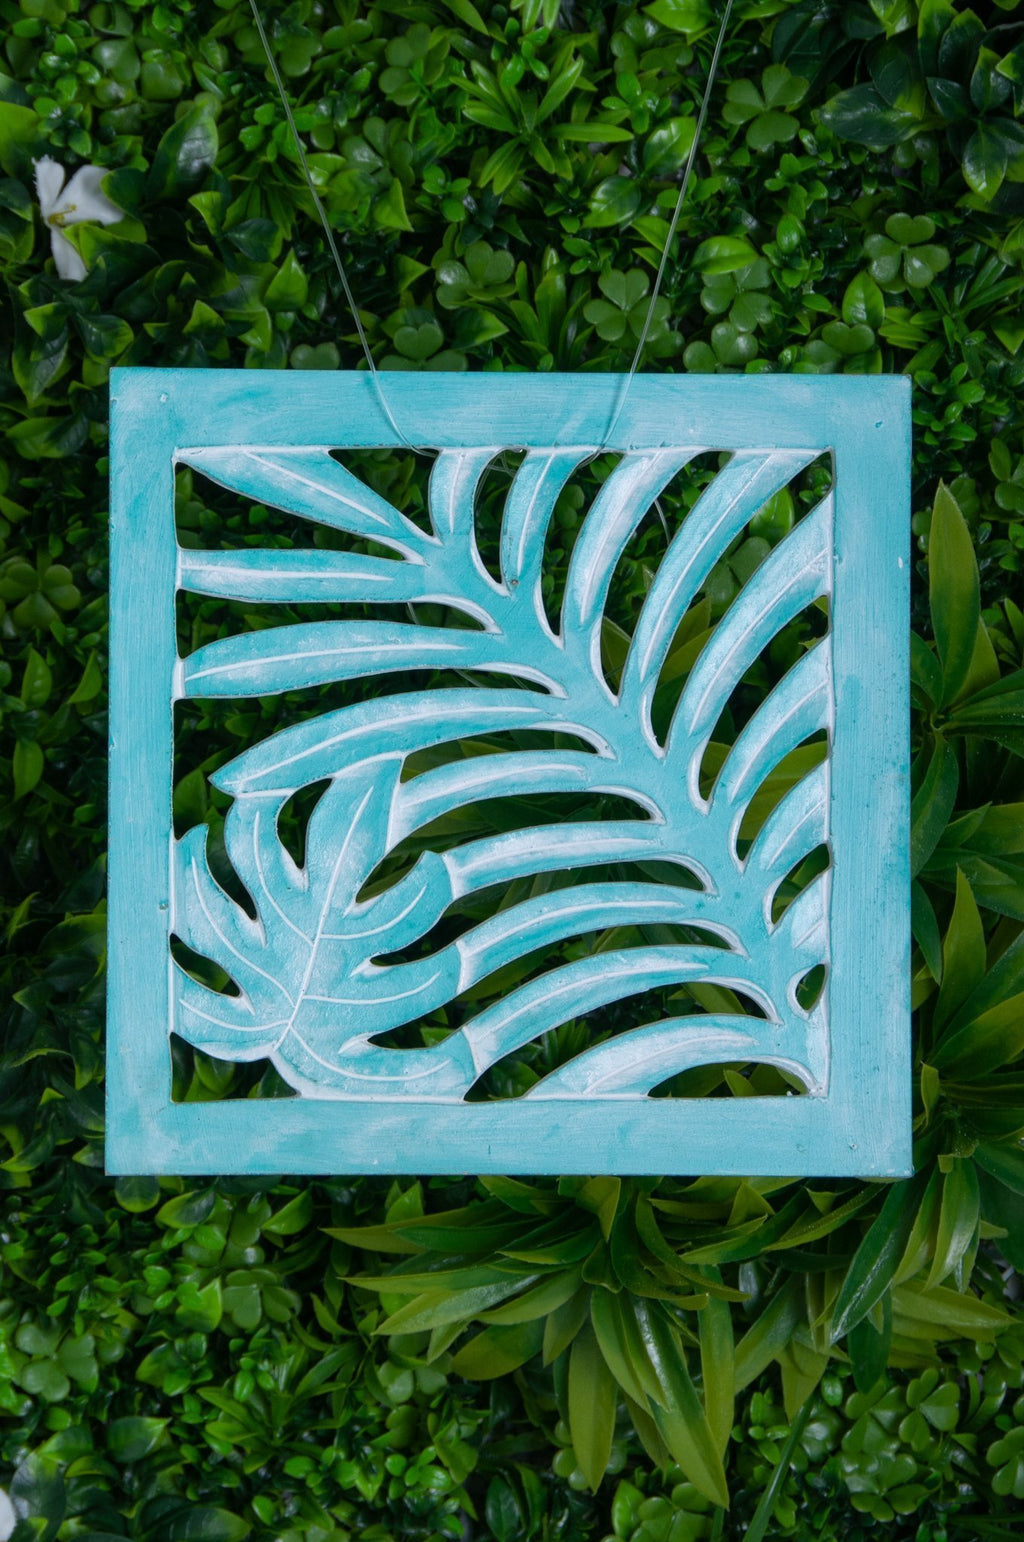 VVLH111 - SQUARE WOOD FERN PANEL 50 x 50cm - BABY GREEN WASH